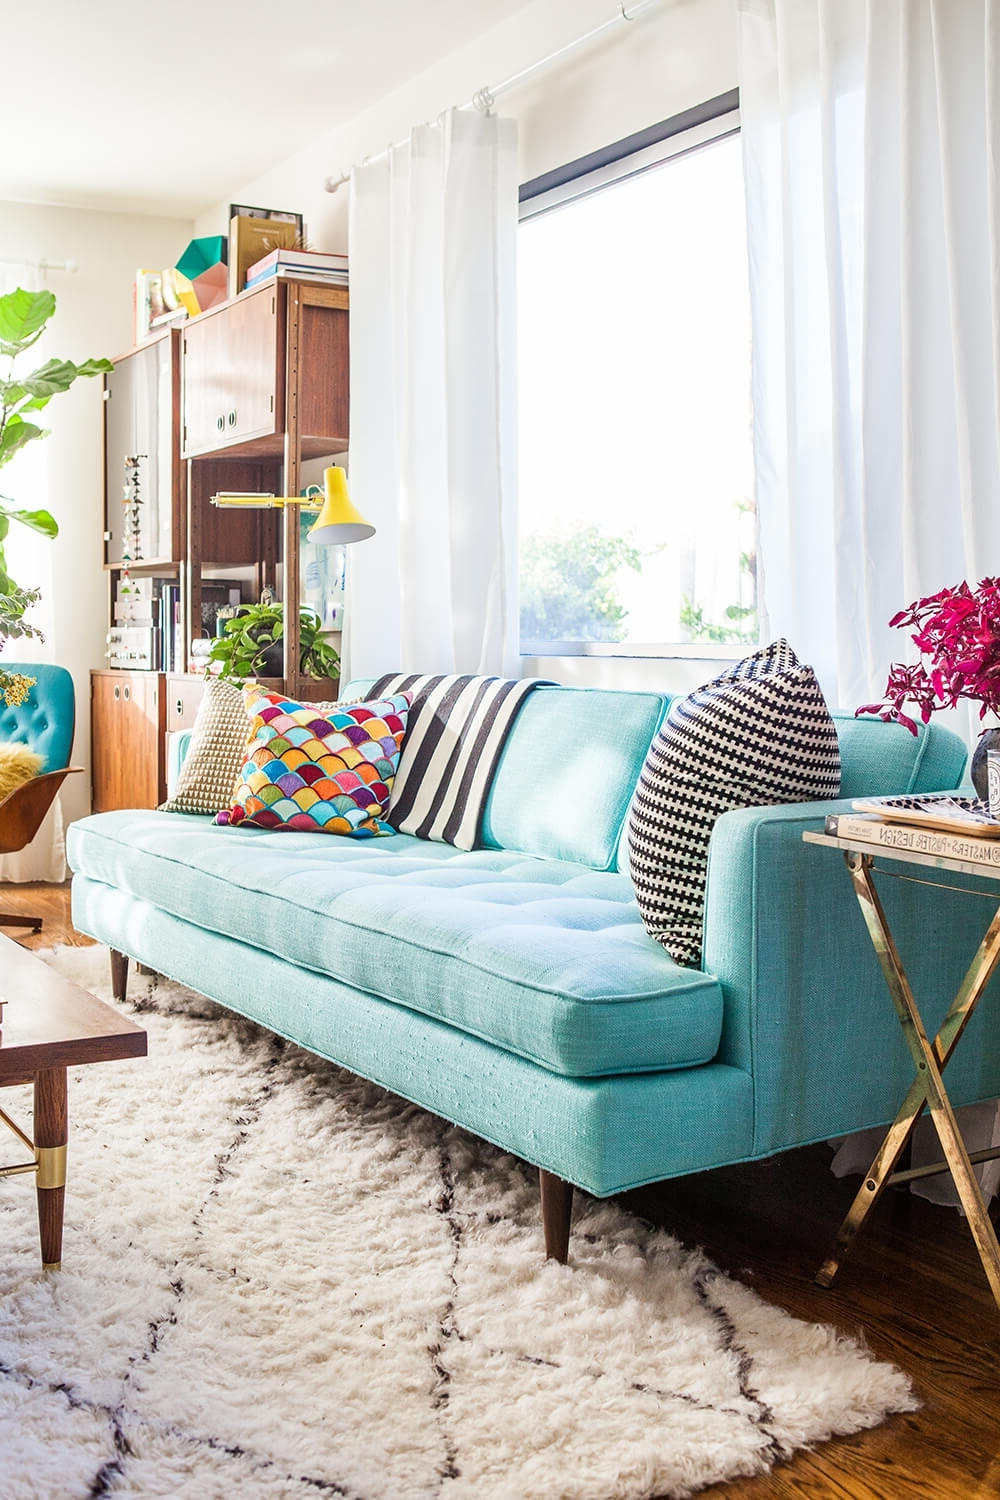 84 Affordable Amazing Sofas Under $1000 – Emily Henderson Intended For Most Recent Turquoise Sofas (View 14 of 15)